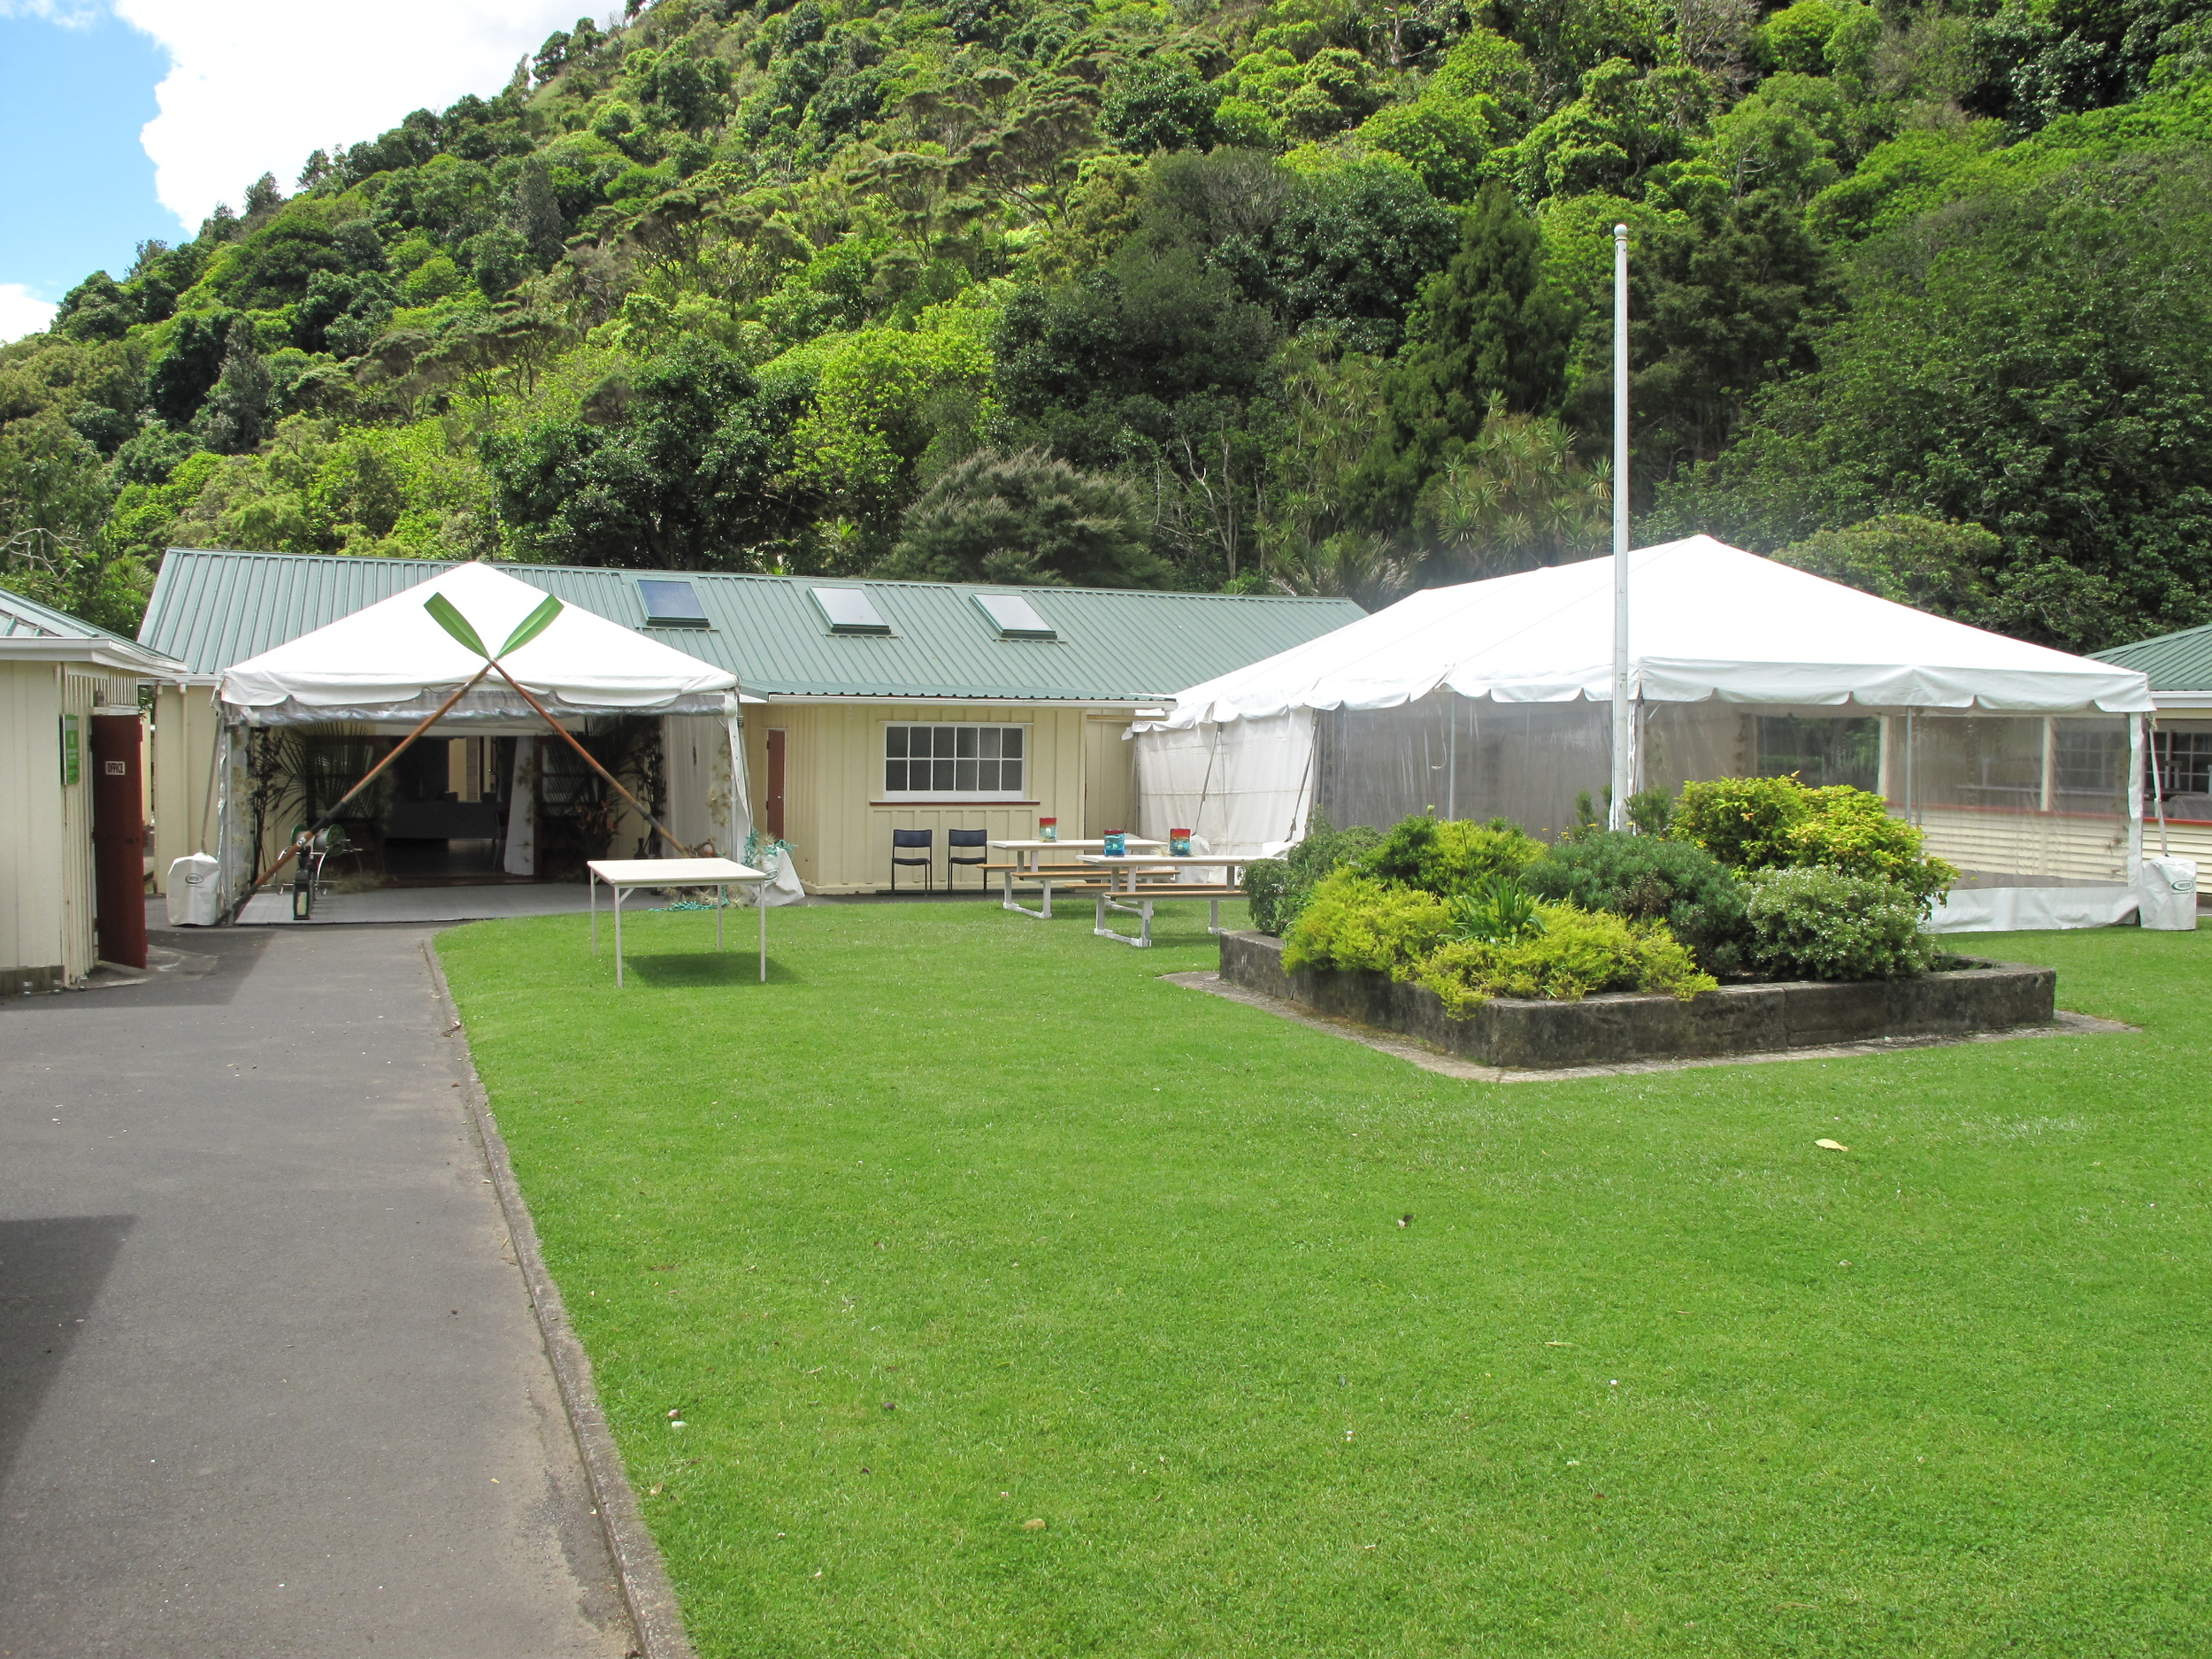 Marquees are permitted with prior arrangement.